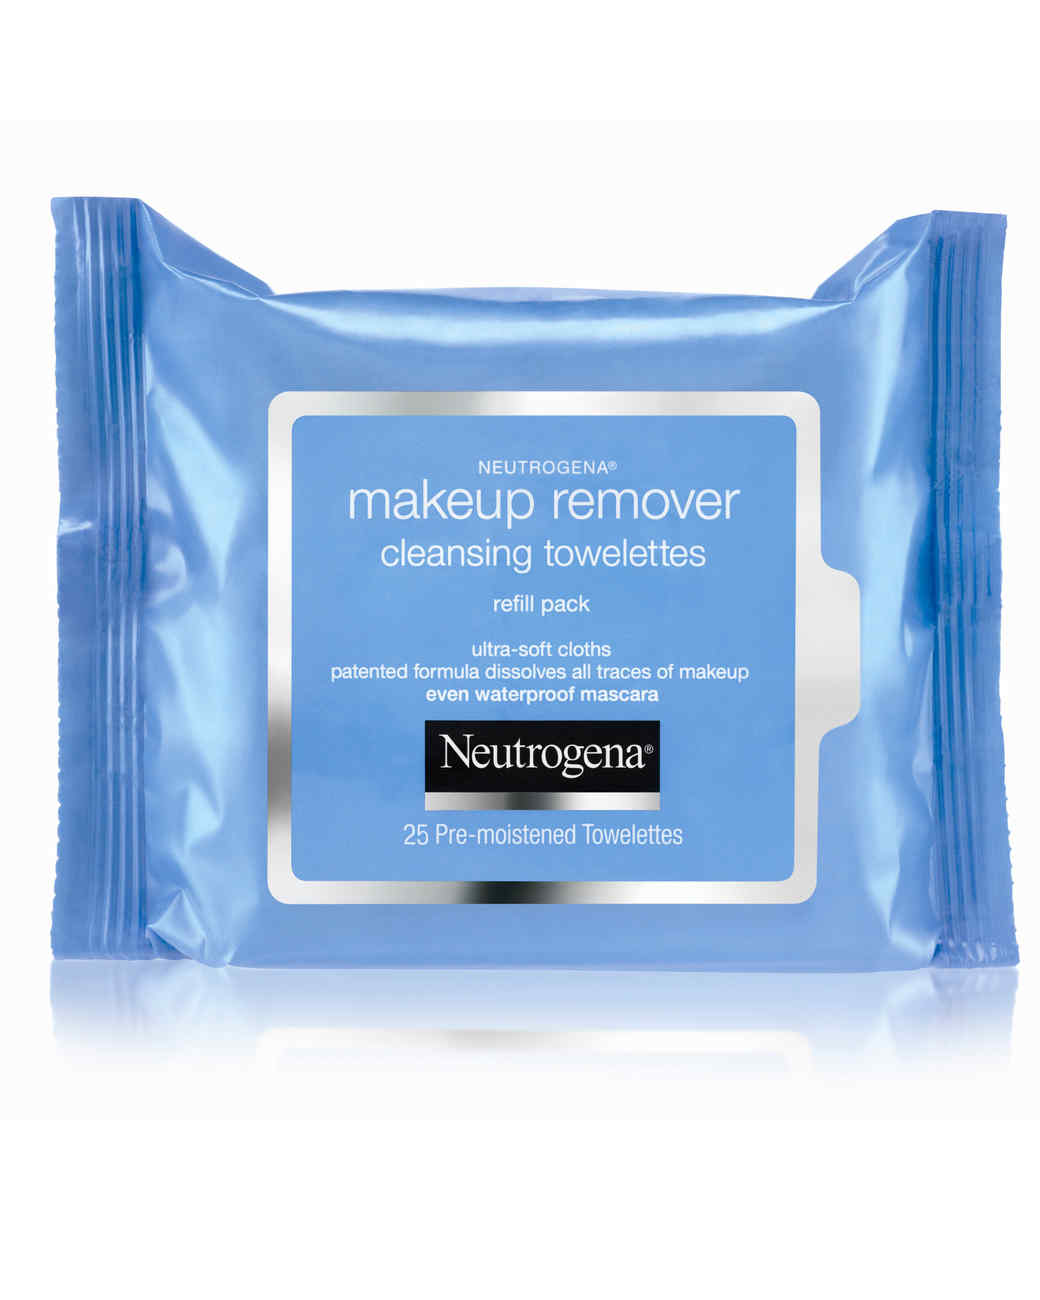 neutrogena-makeup-remover-cleansing-towelettes-0314.jpg